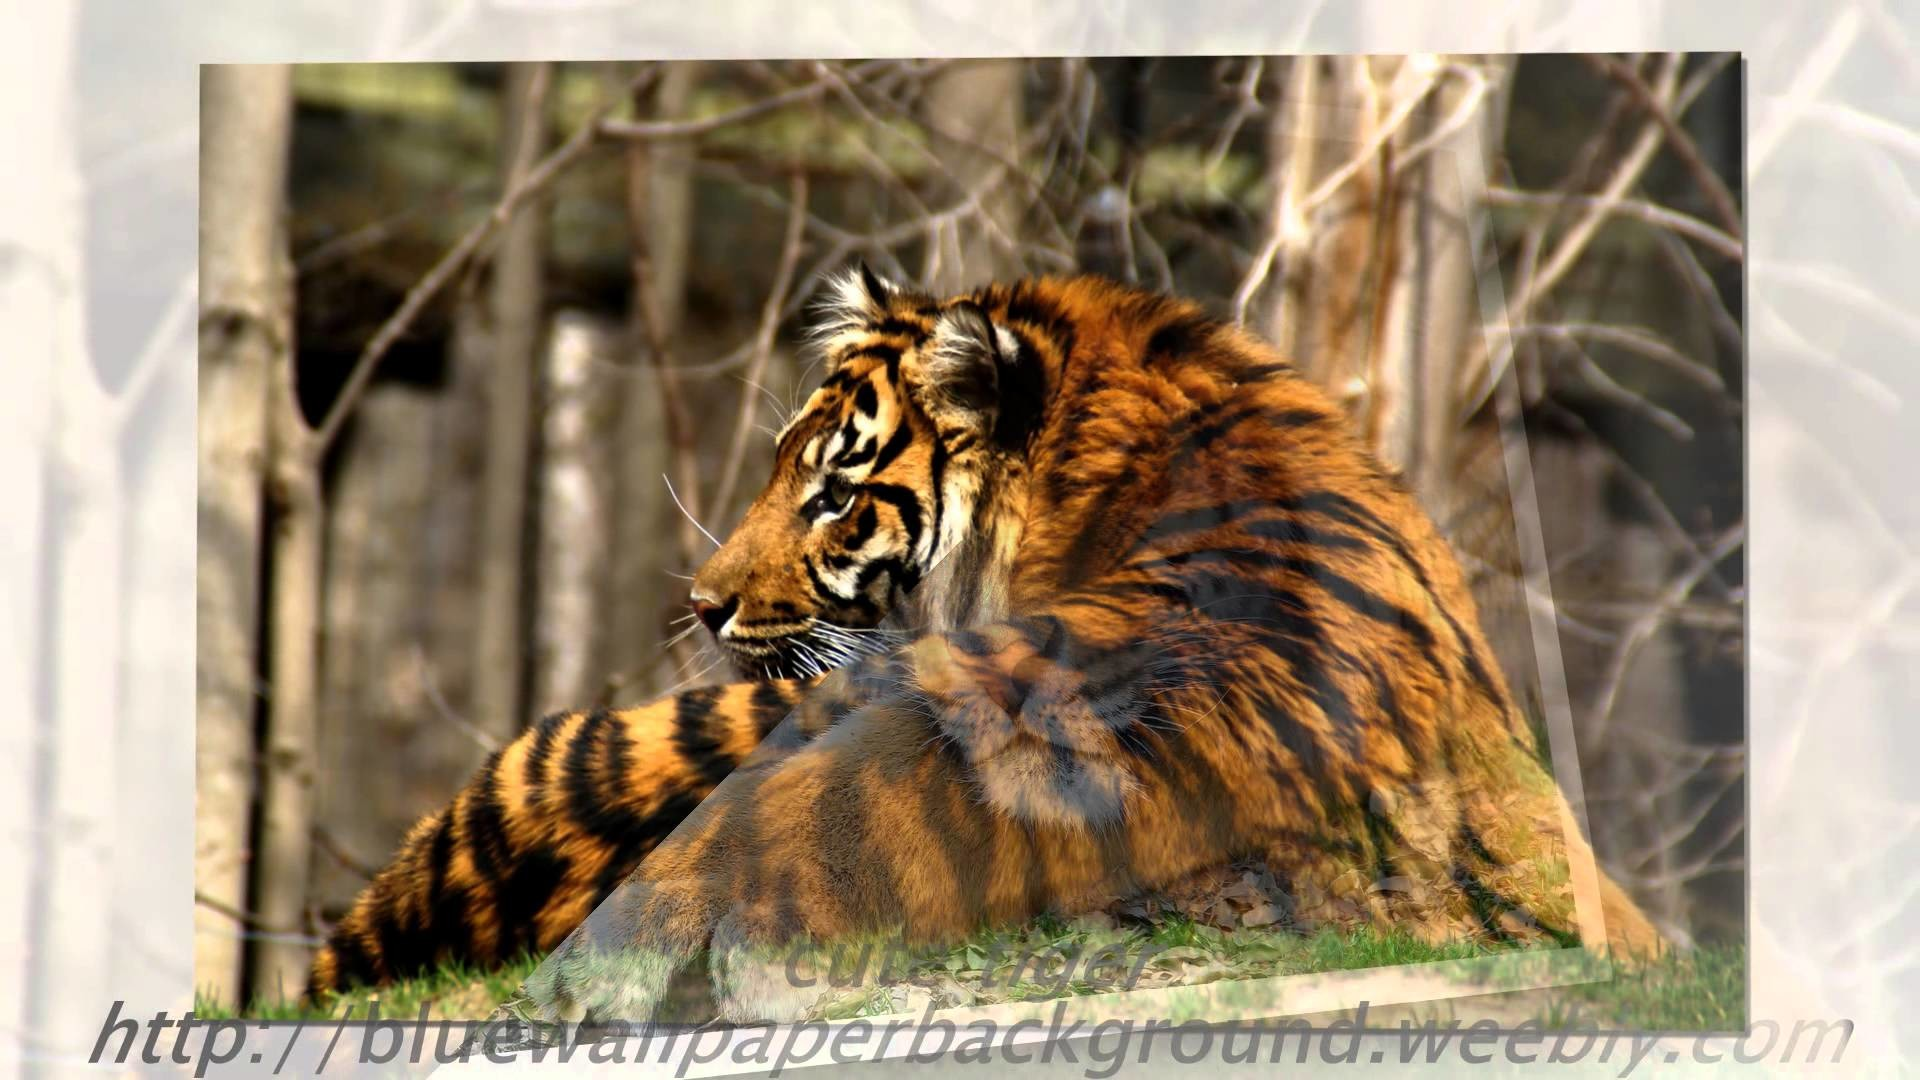 Tiger Wallpaper White Animal Pictures Forest Wild Baby images cool  photography bengal tiger – YouTube